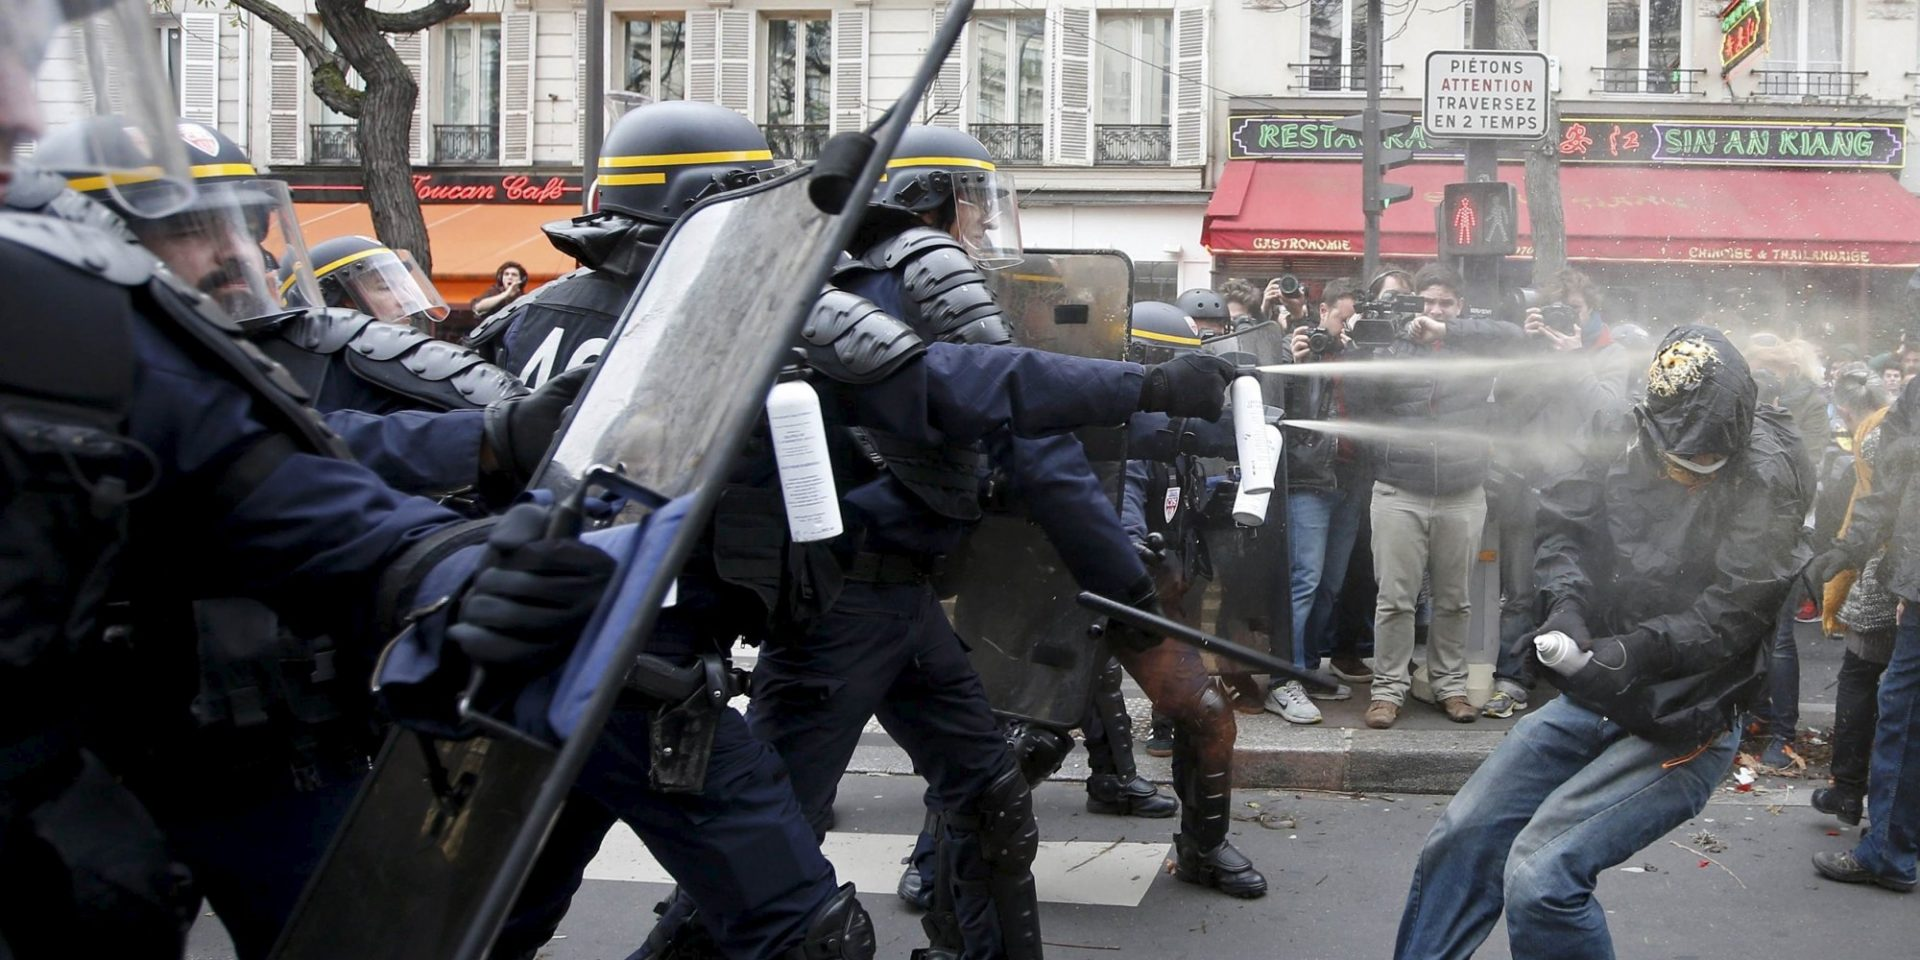 Demonstrators clash with CRS riot policemen near the Place de la Republique after the cancellation of a planned climate march following shootings in the French capital, ahead of the World Climate Change Conference 2015 (COP21), in Paris, France, November 29, 2015.            REUTERS/Eric Gaillard      TPX IMAGES OF THE DAY